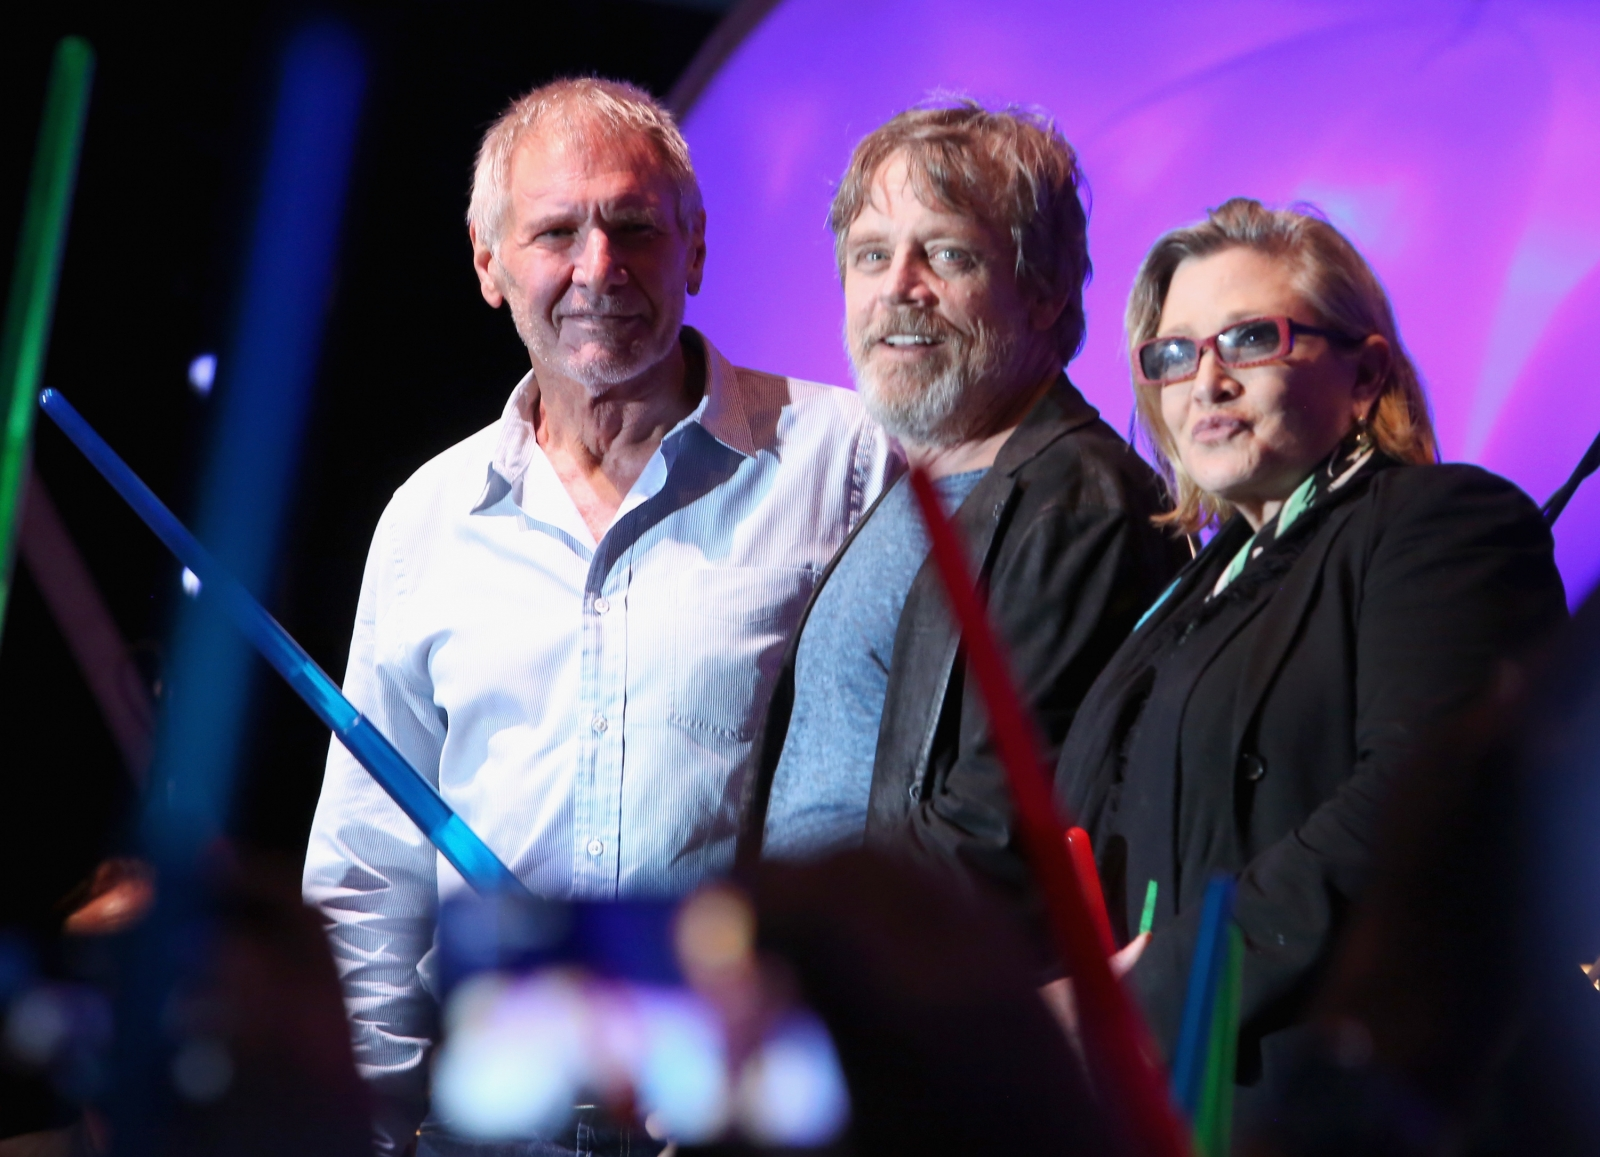 Harrison Ford at Comic Con Star Wars